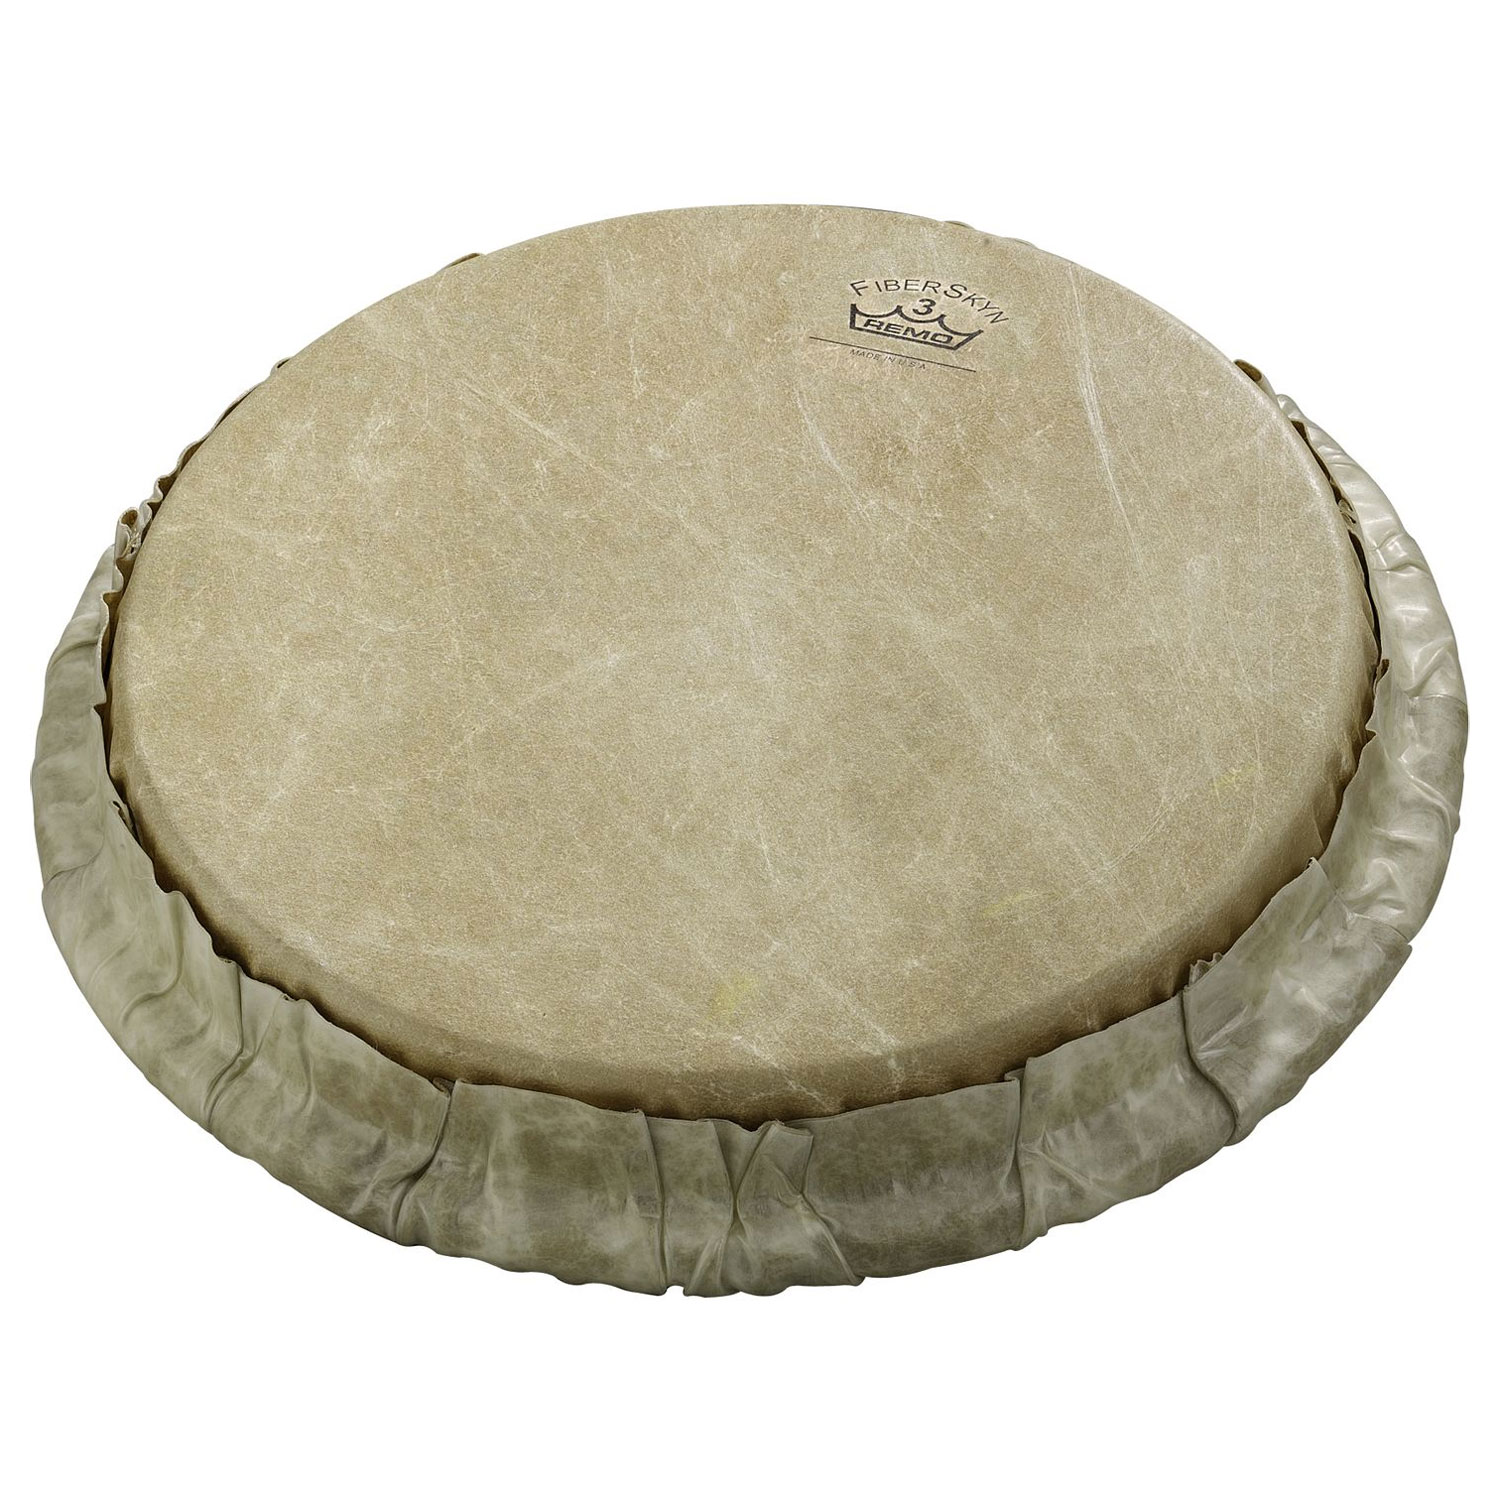 "Remo 9"" Tucked Fiberskyn Bongo Drum Head"